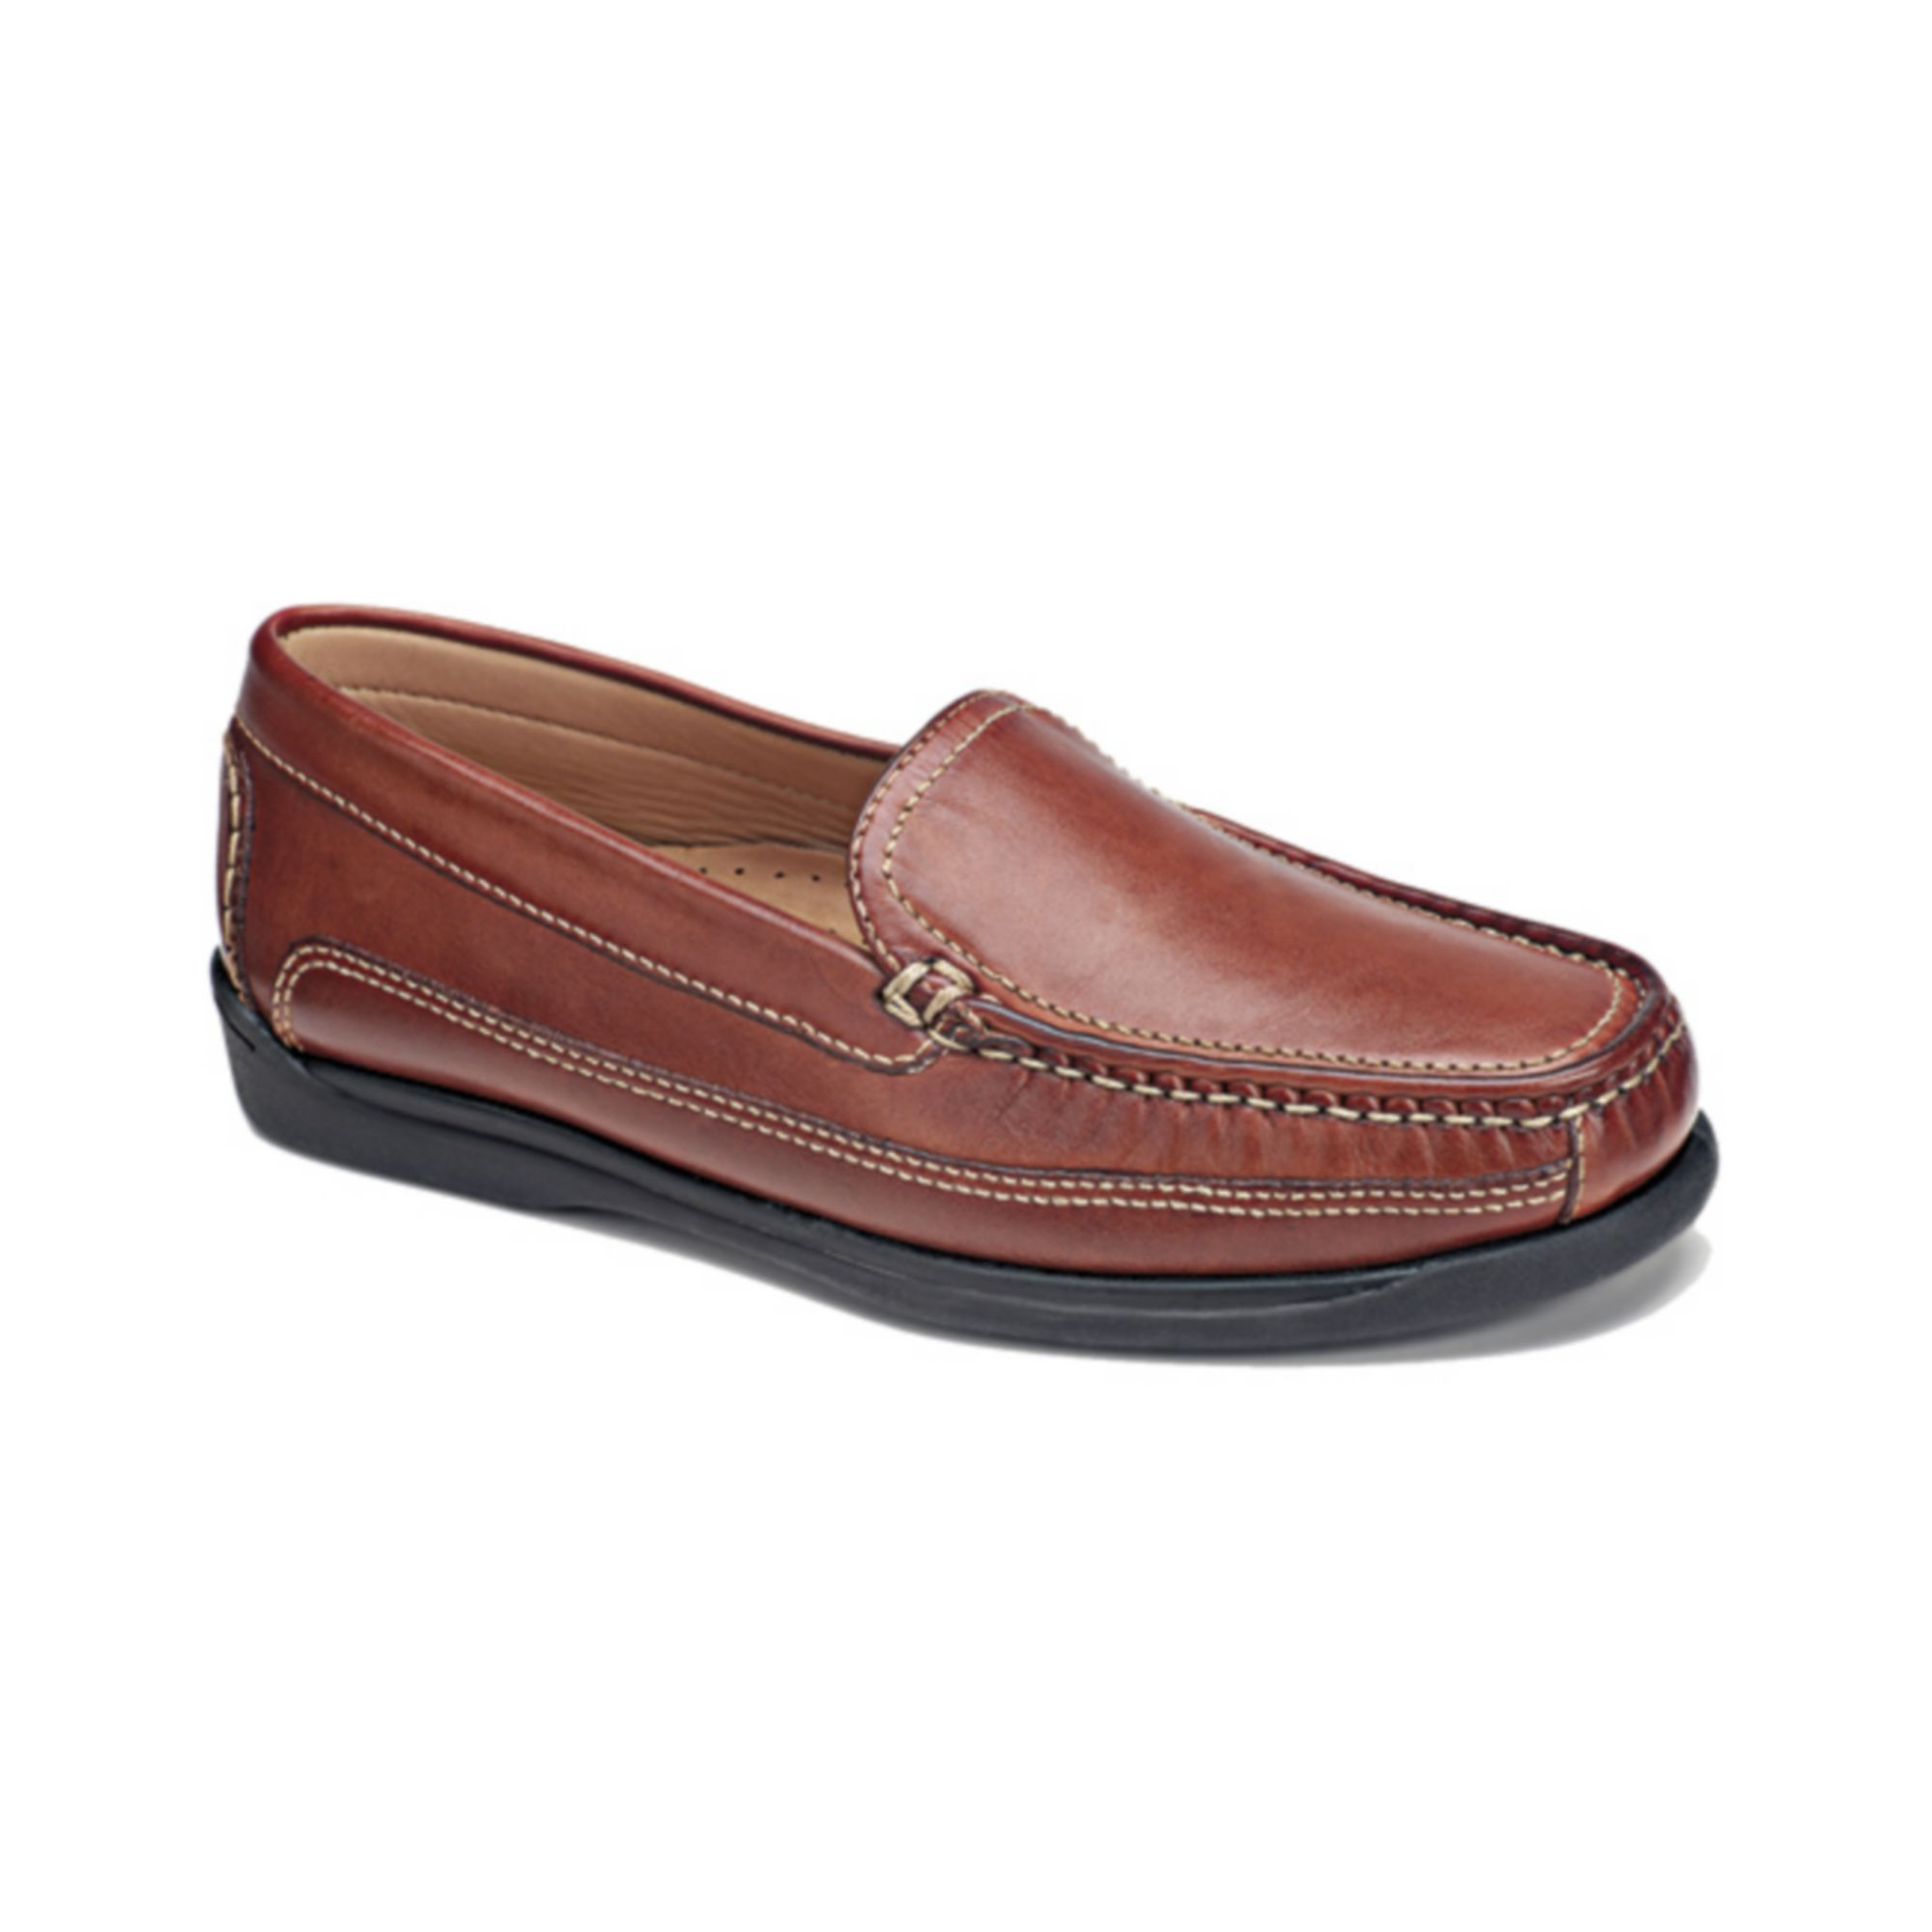 Dockers Mens Shoes